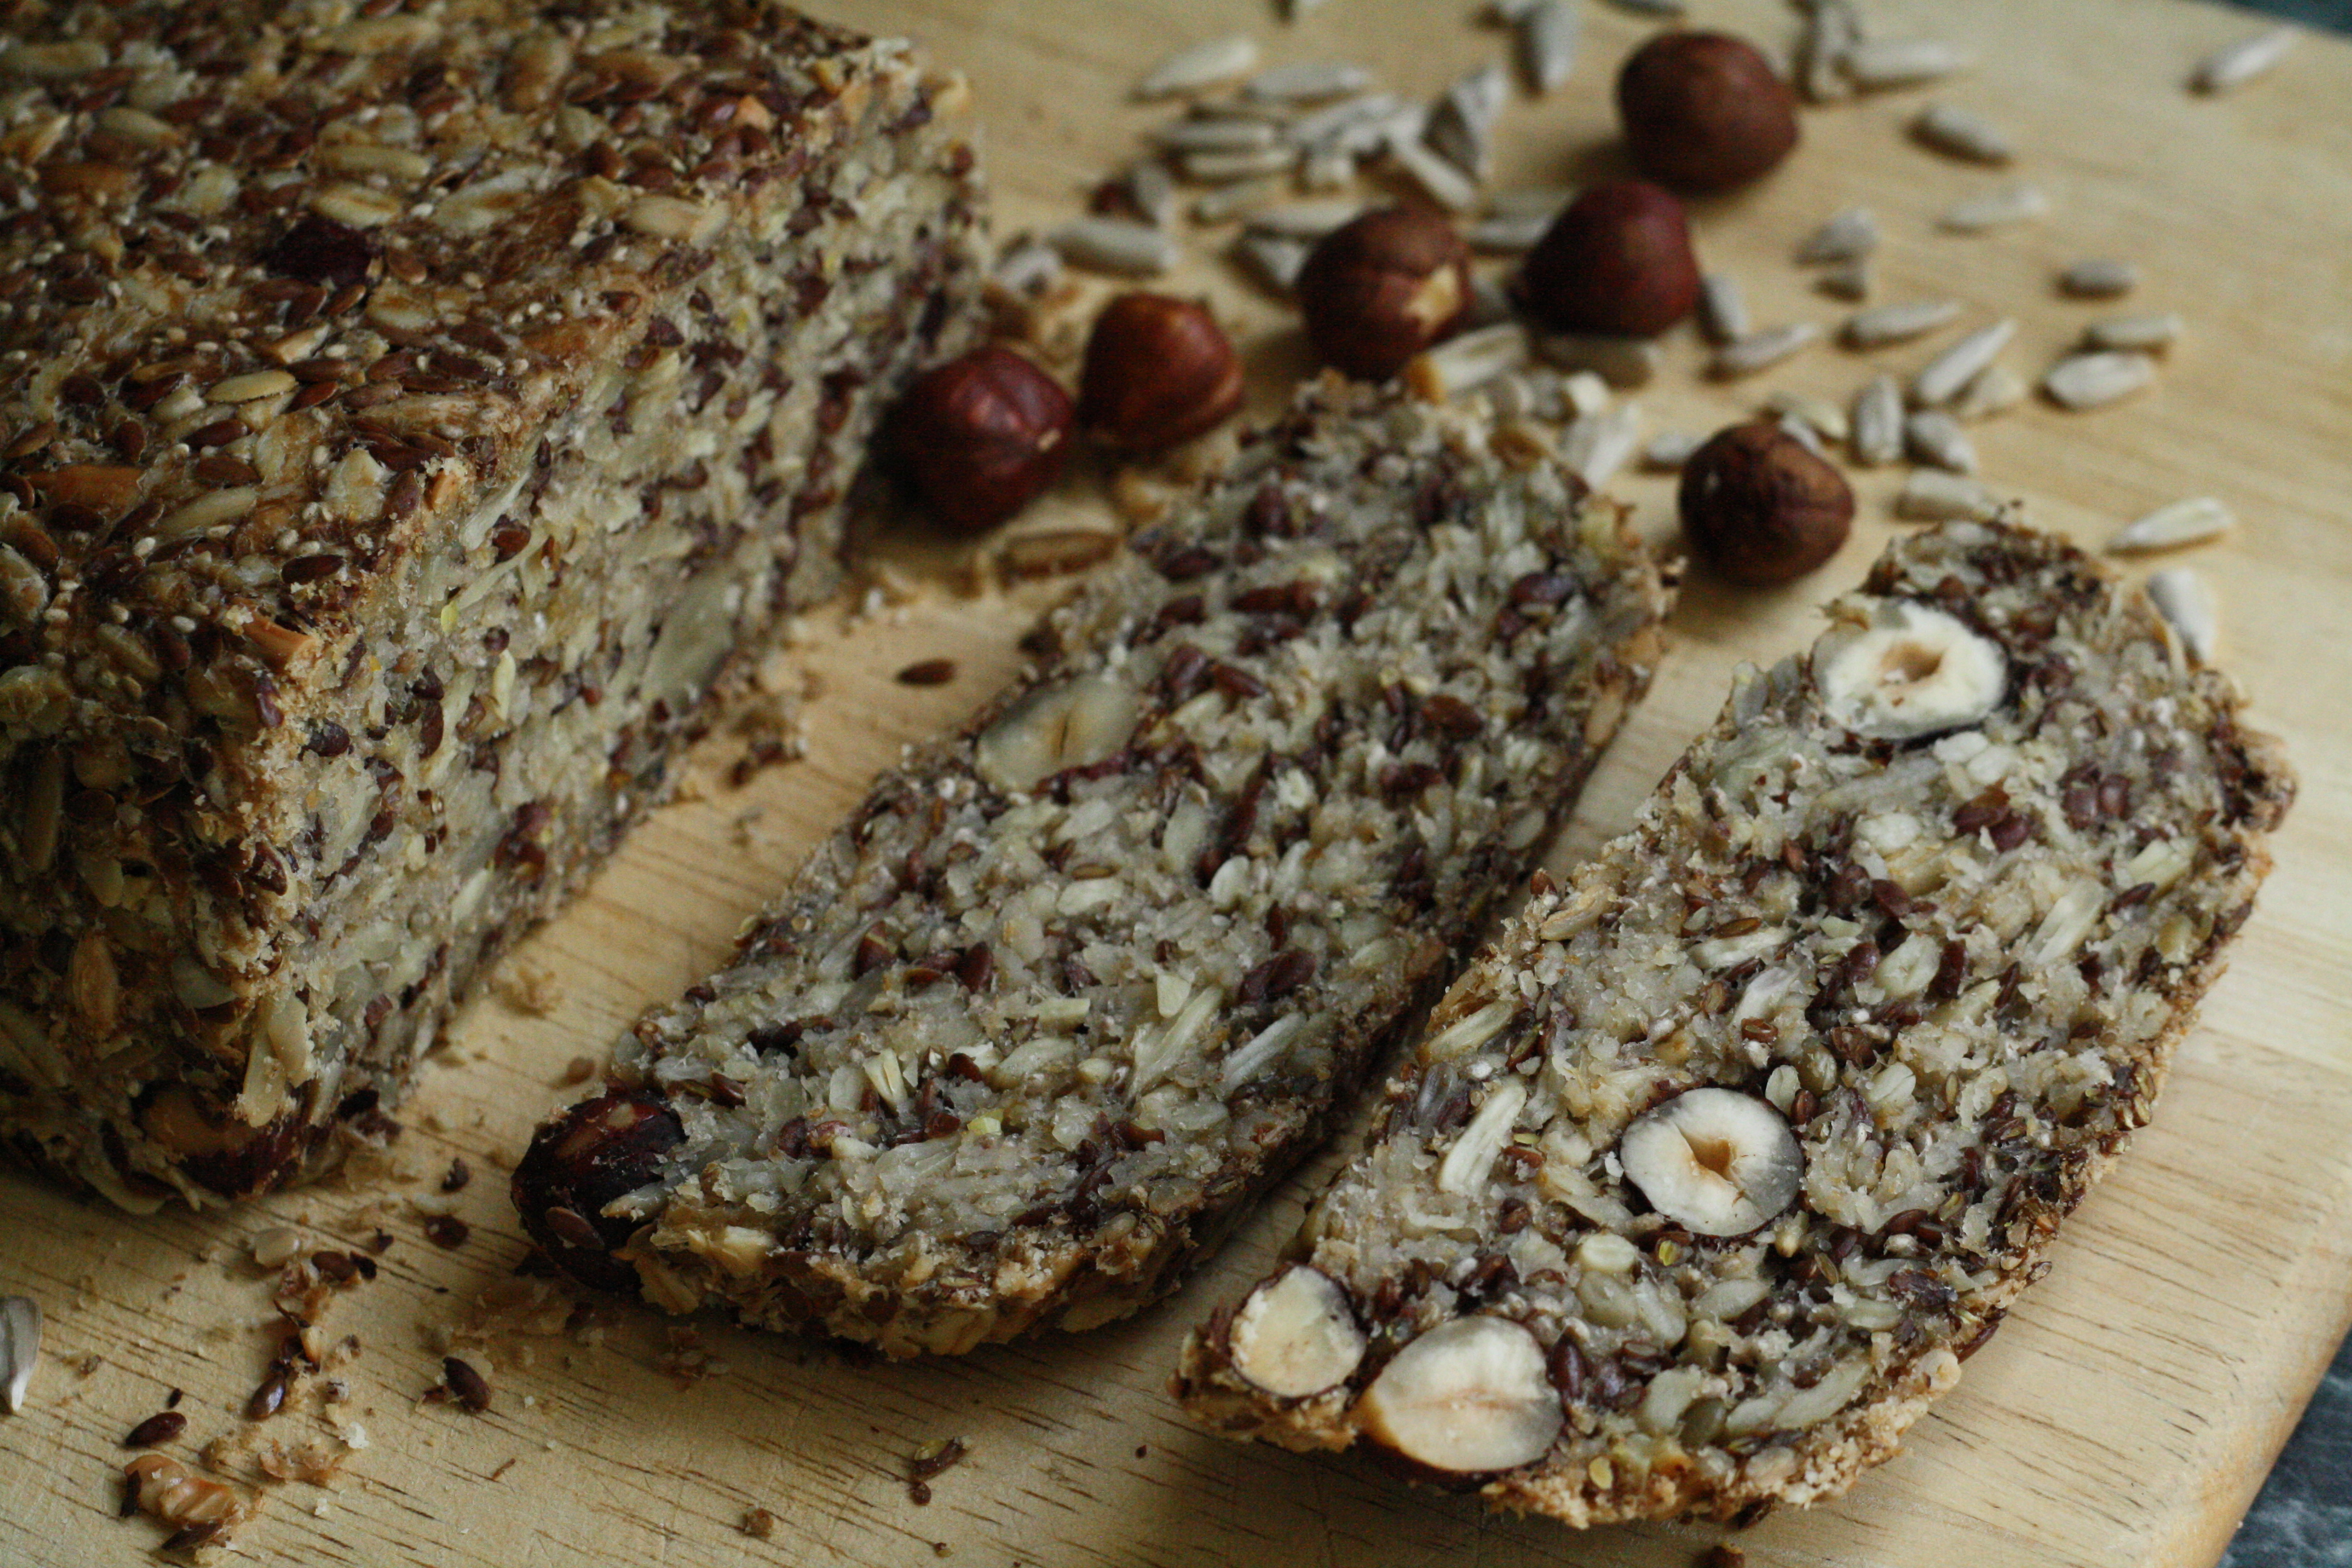 The Ultimate Seed and Nut Bread